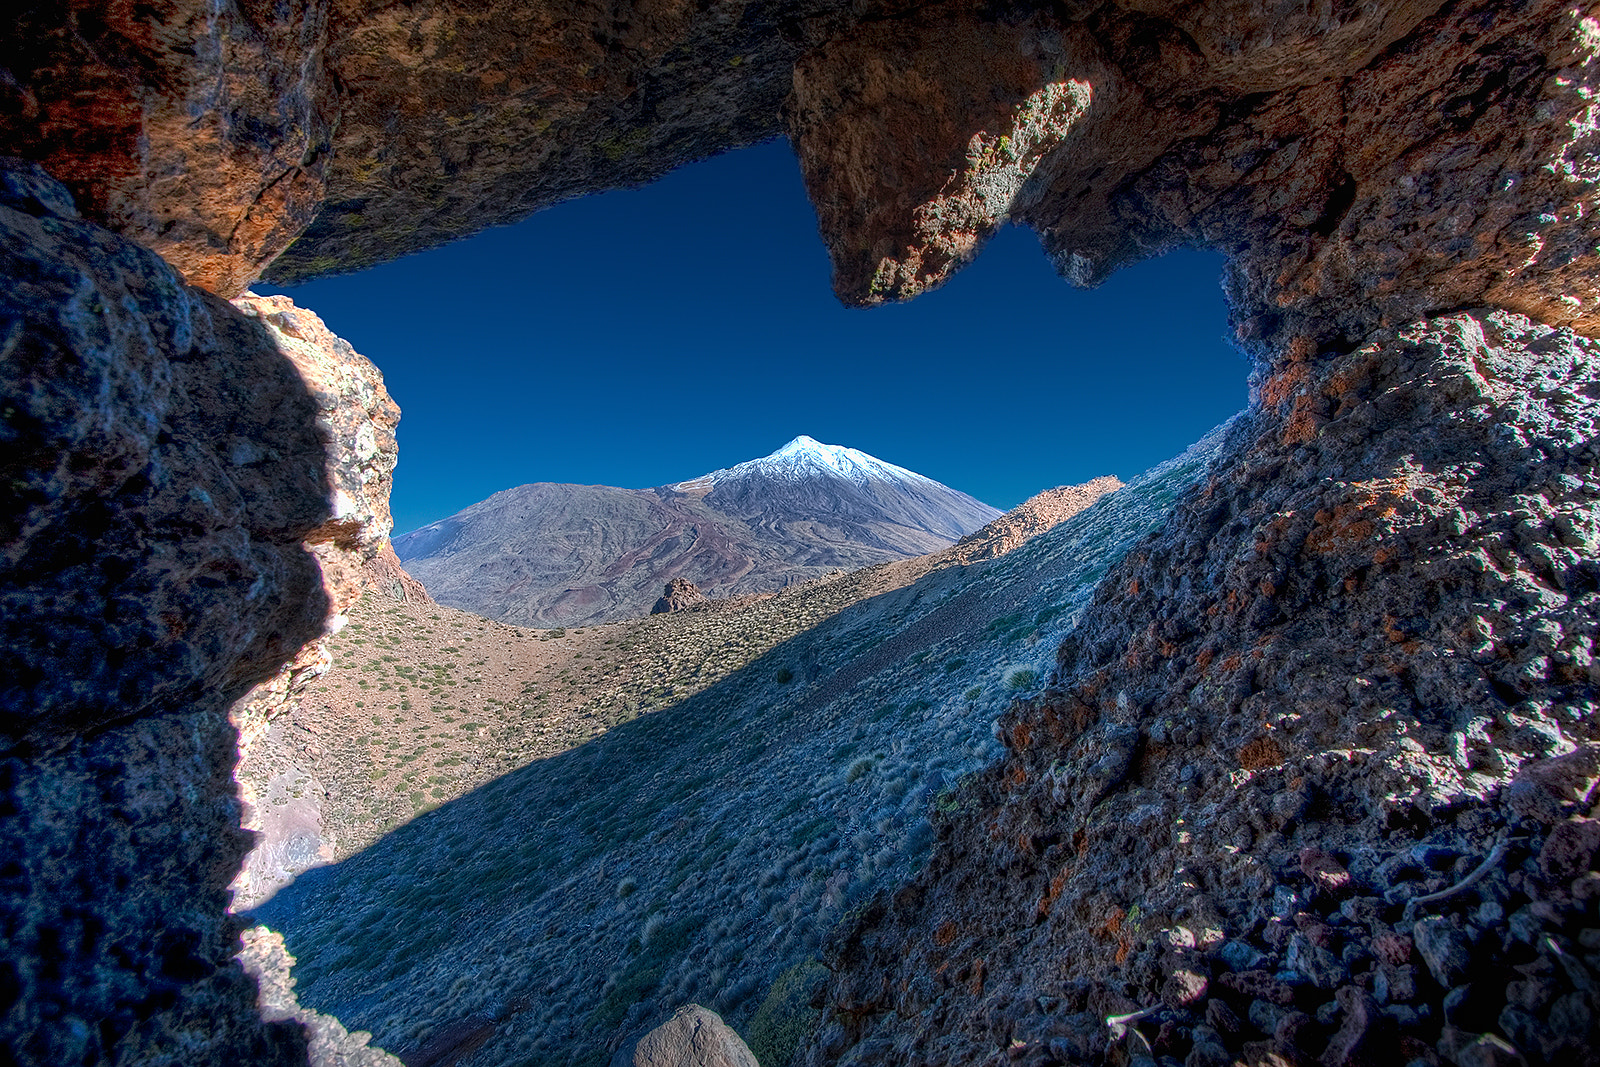 Photograph Mt. Teide through rock archway by Michael Bolognesi on 500px